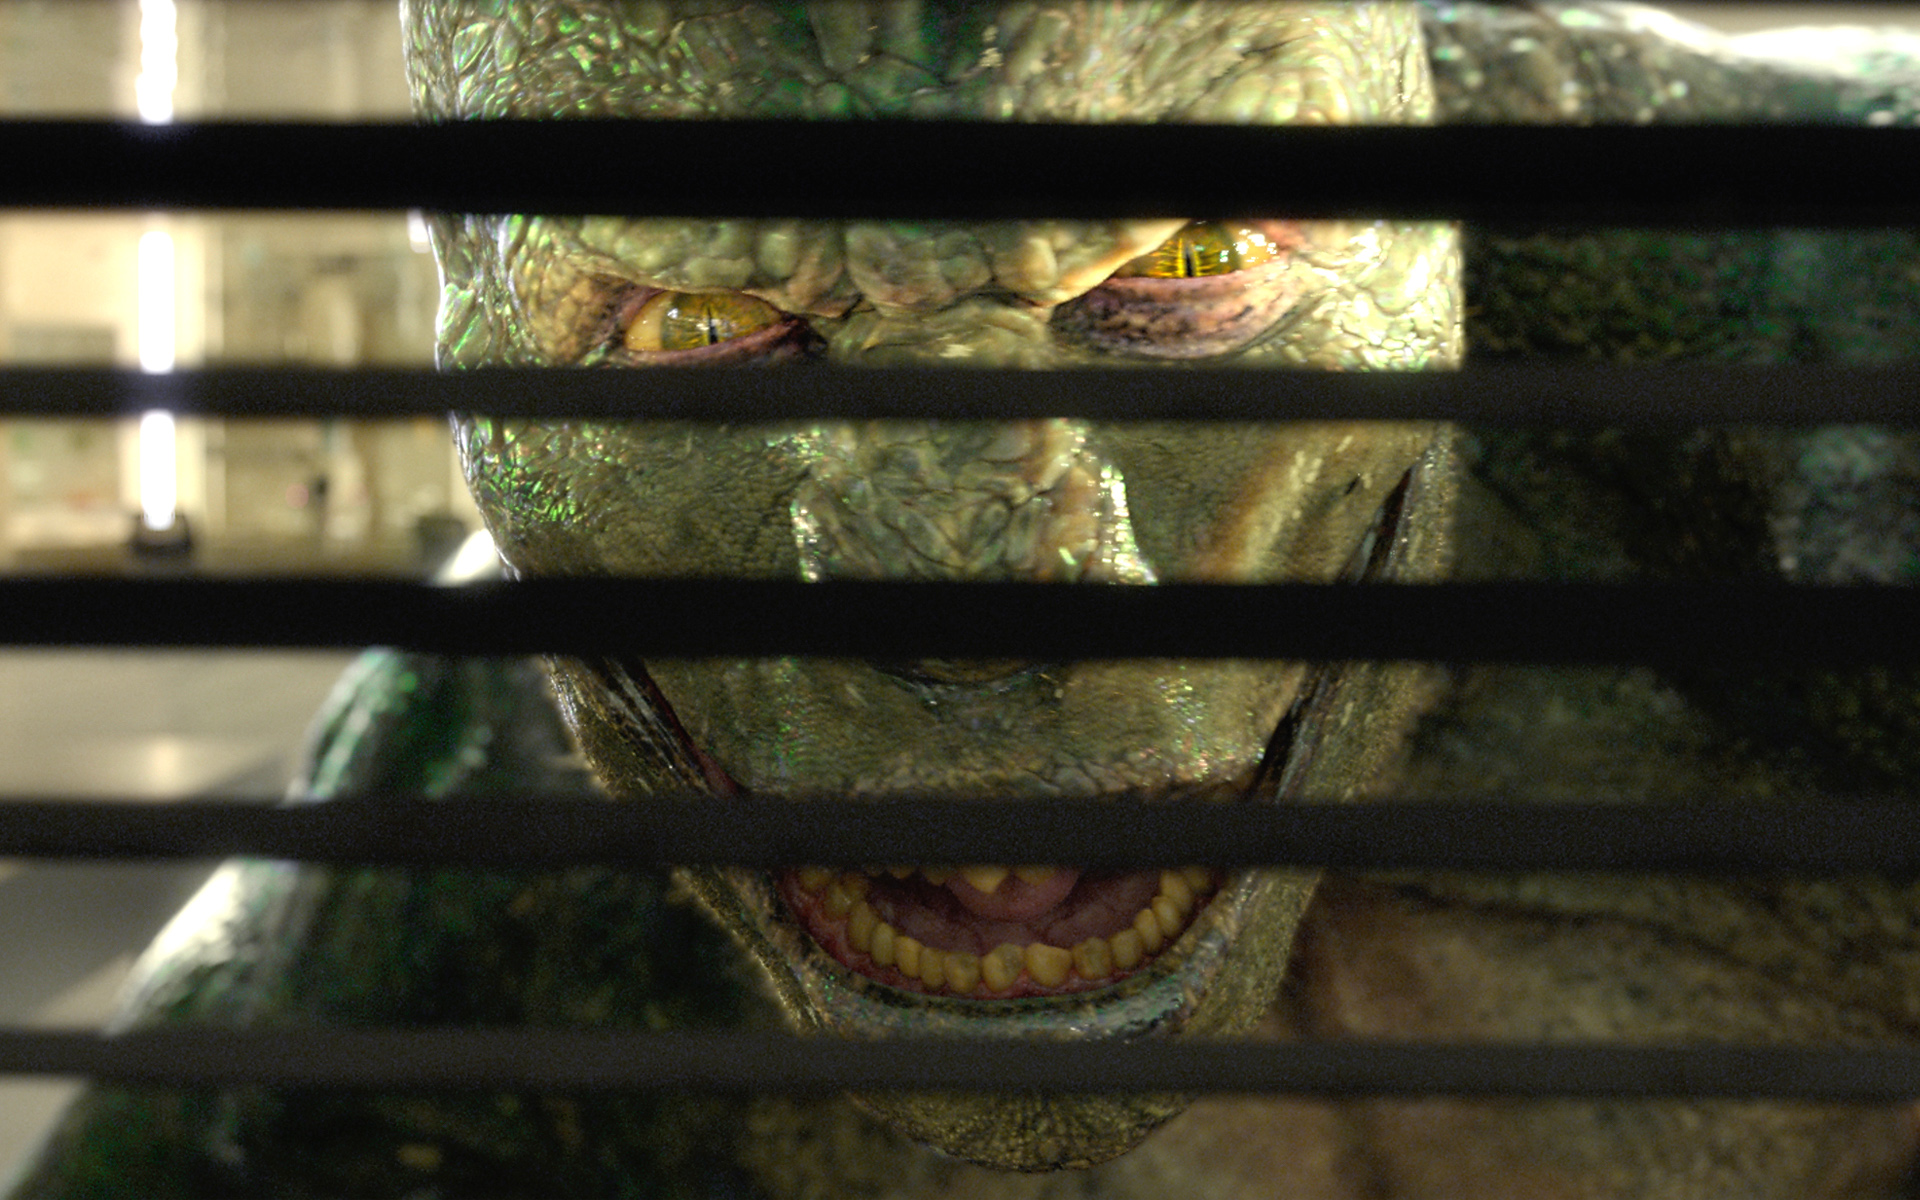 Lizard in Amazing Spider Man